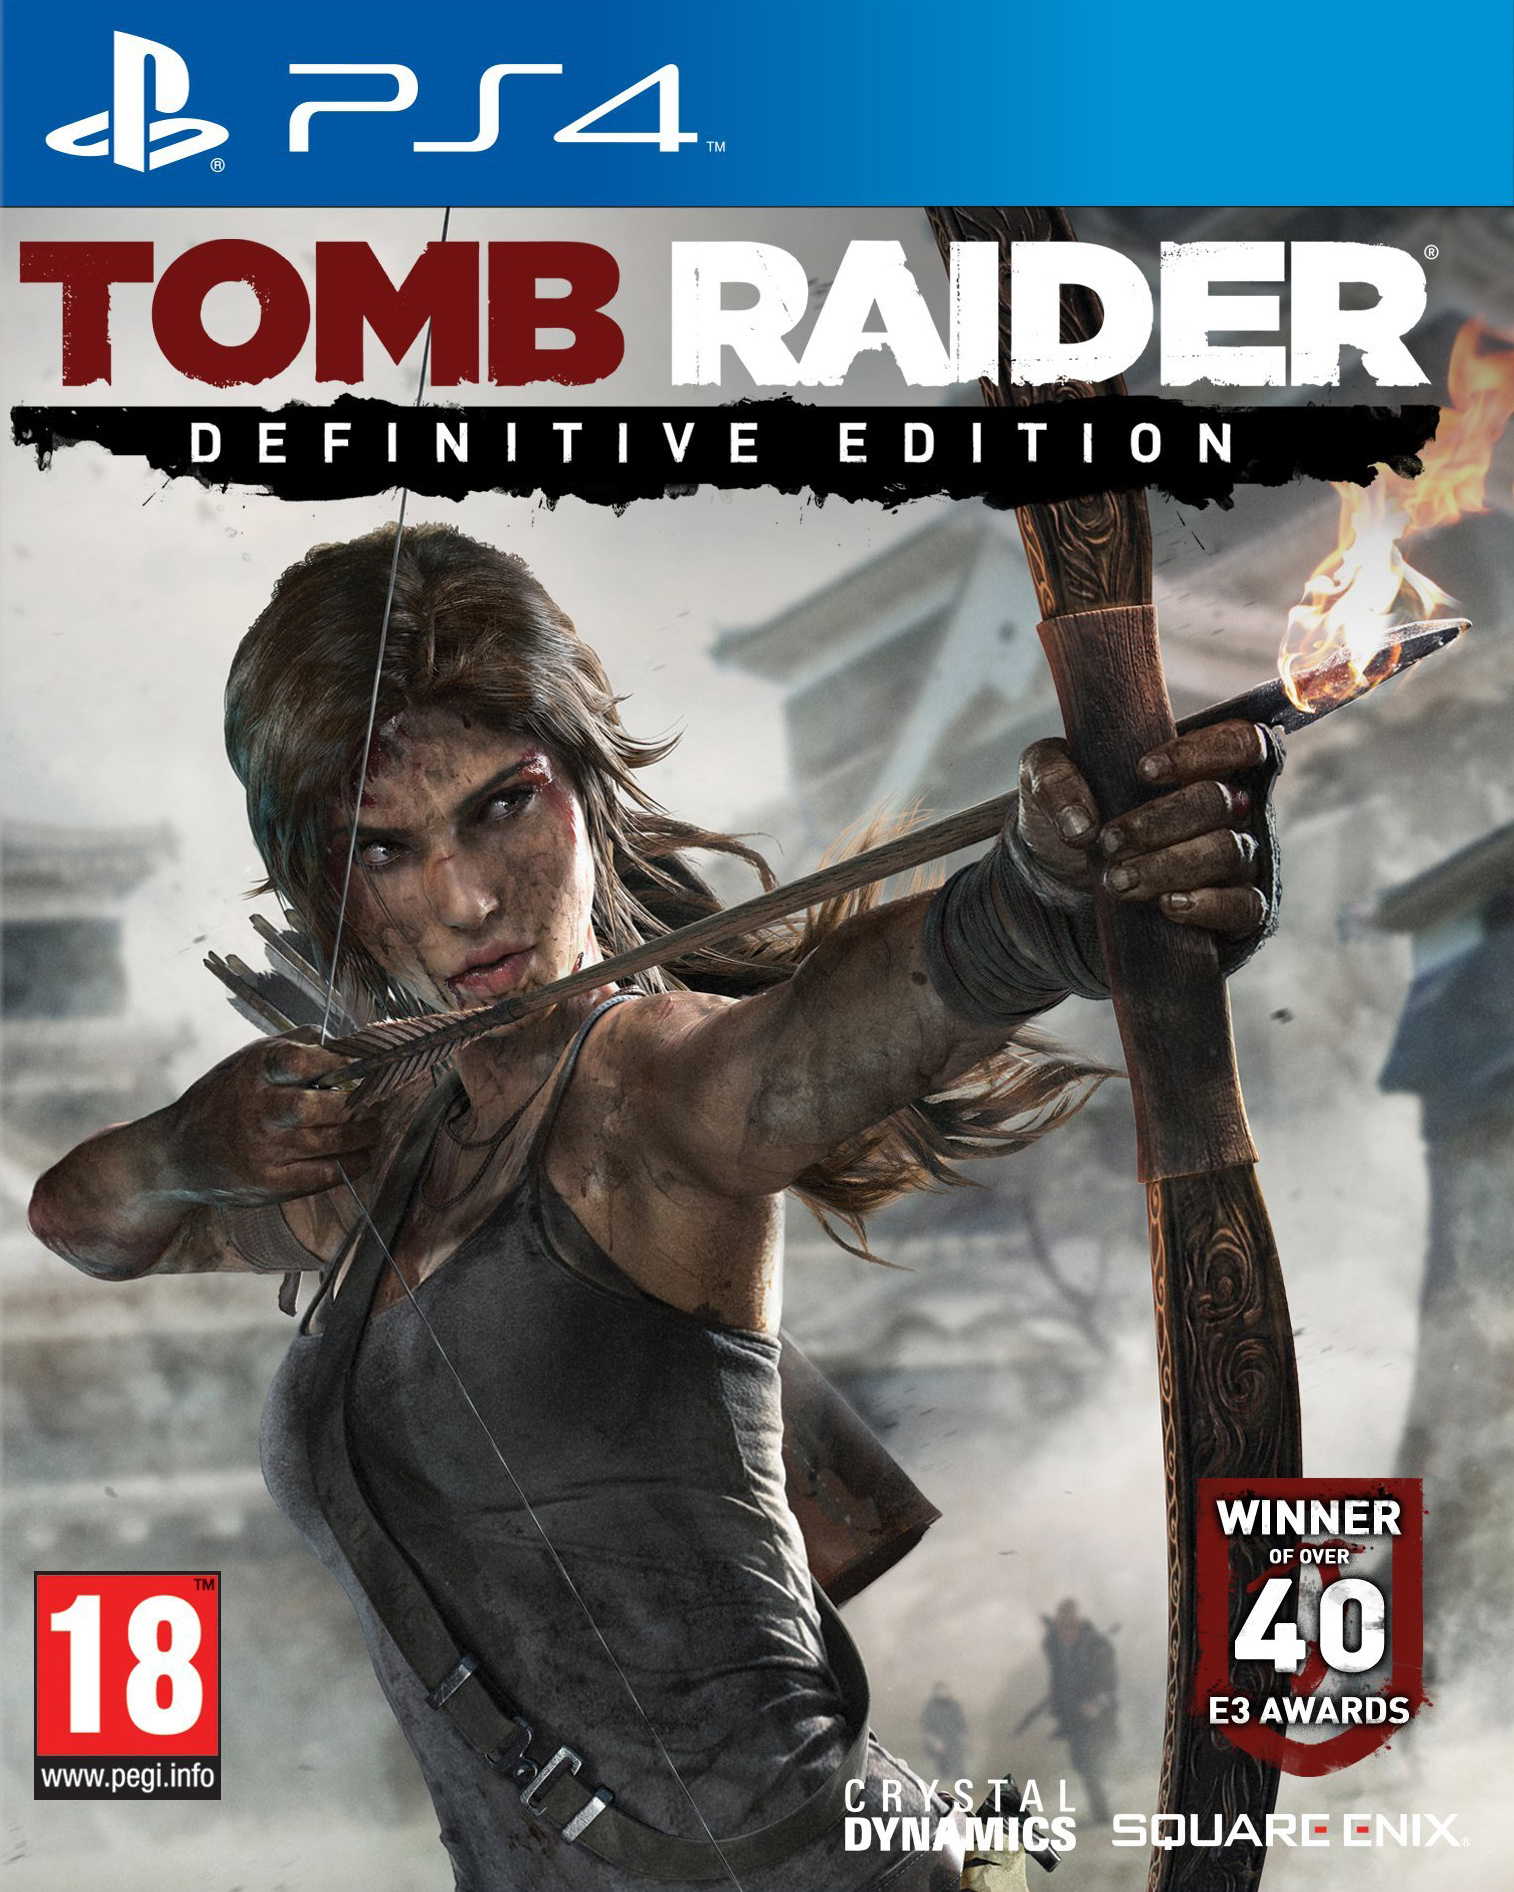 Tomb Raider - Definitive Edition [PS4] 5.05 / 6.72 / 7.02 [EUR] (2013) [Русский] (v1.01)